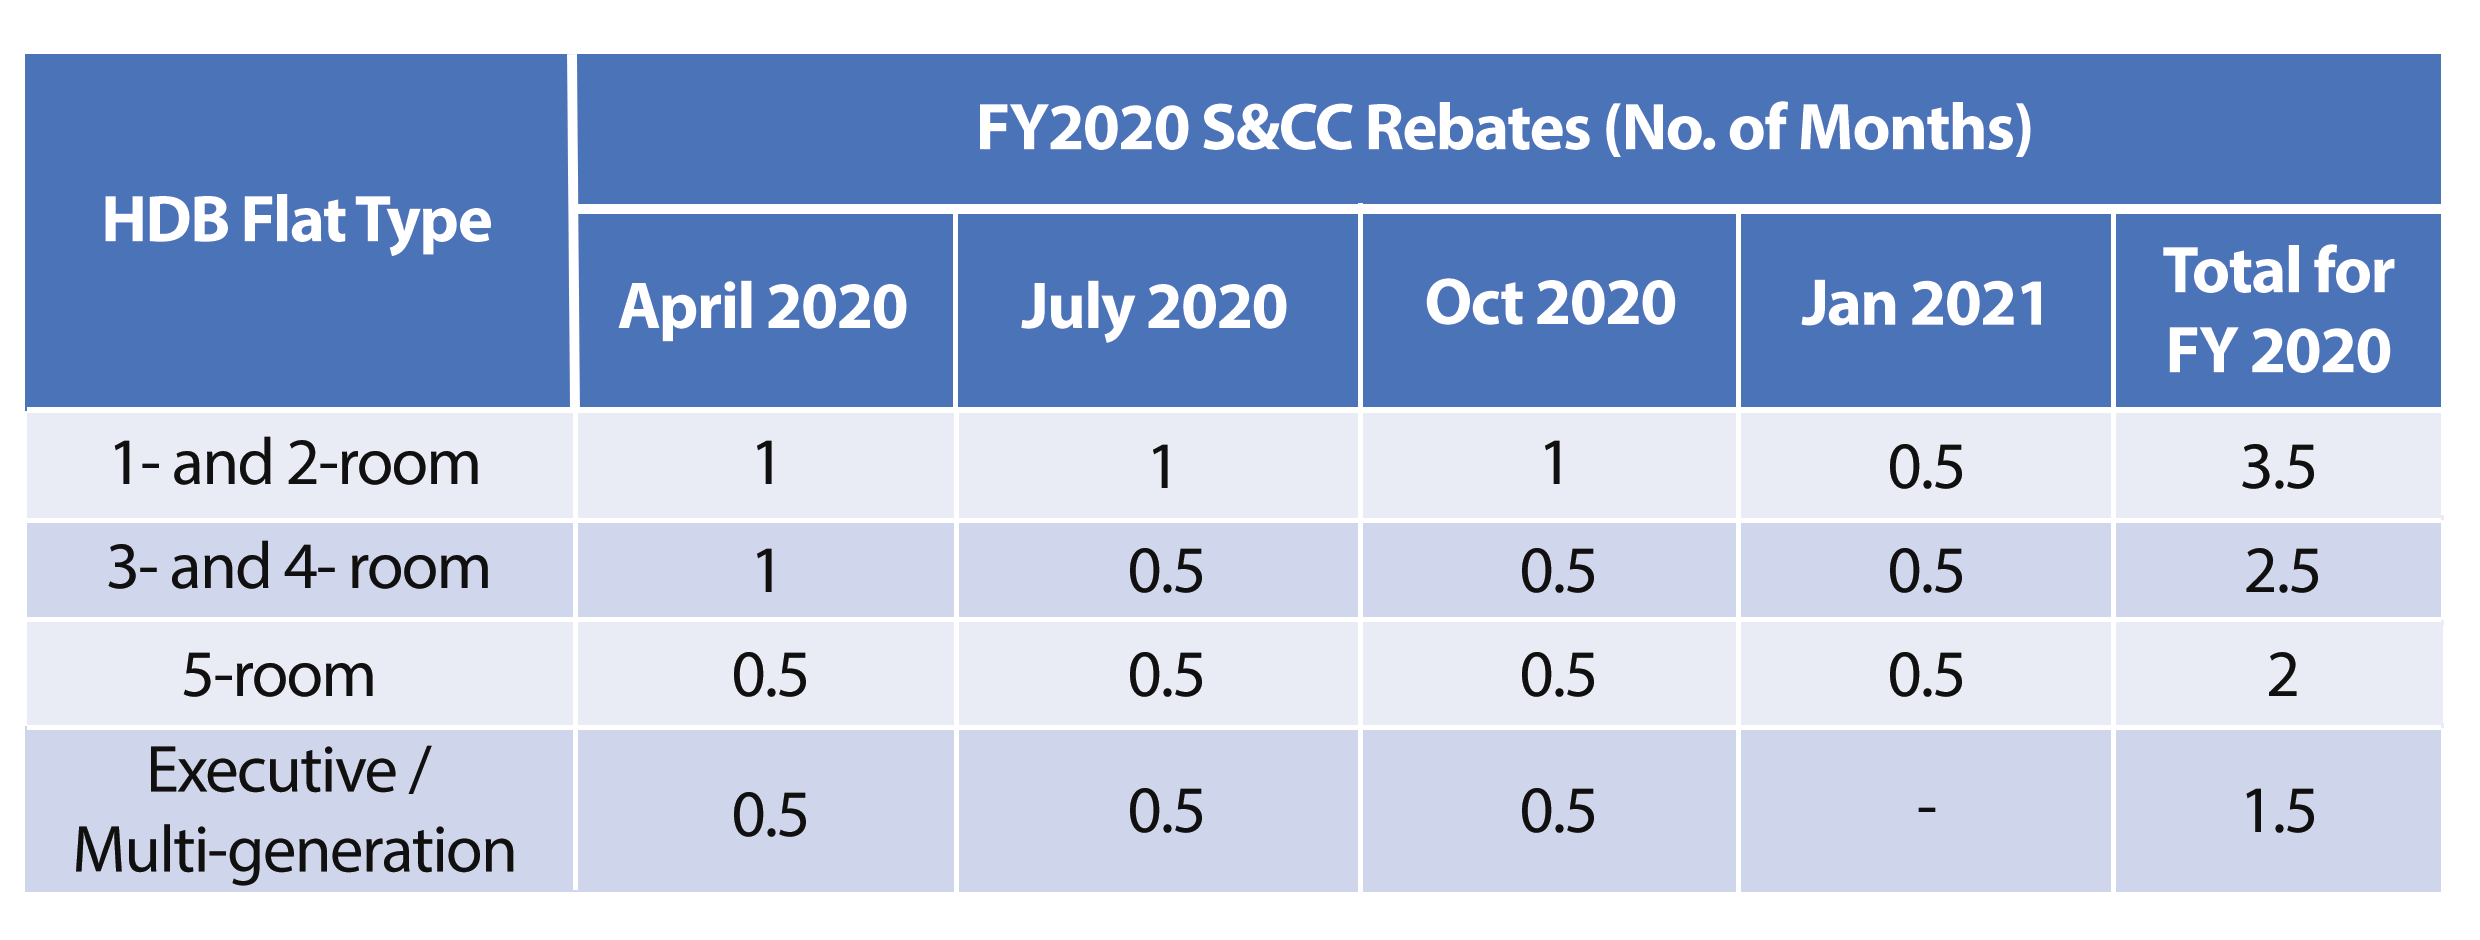 S&CC Rebates for FY2020